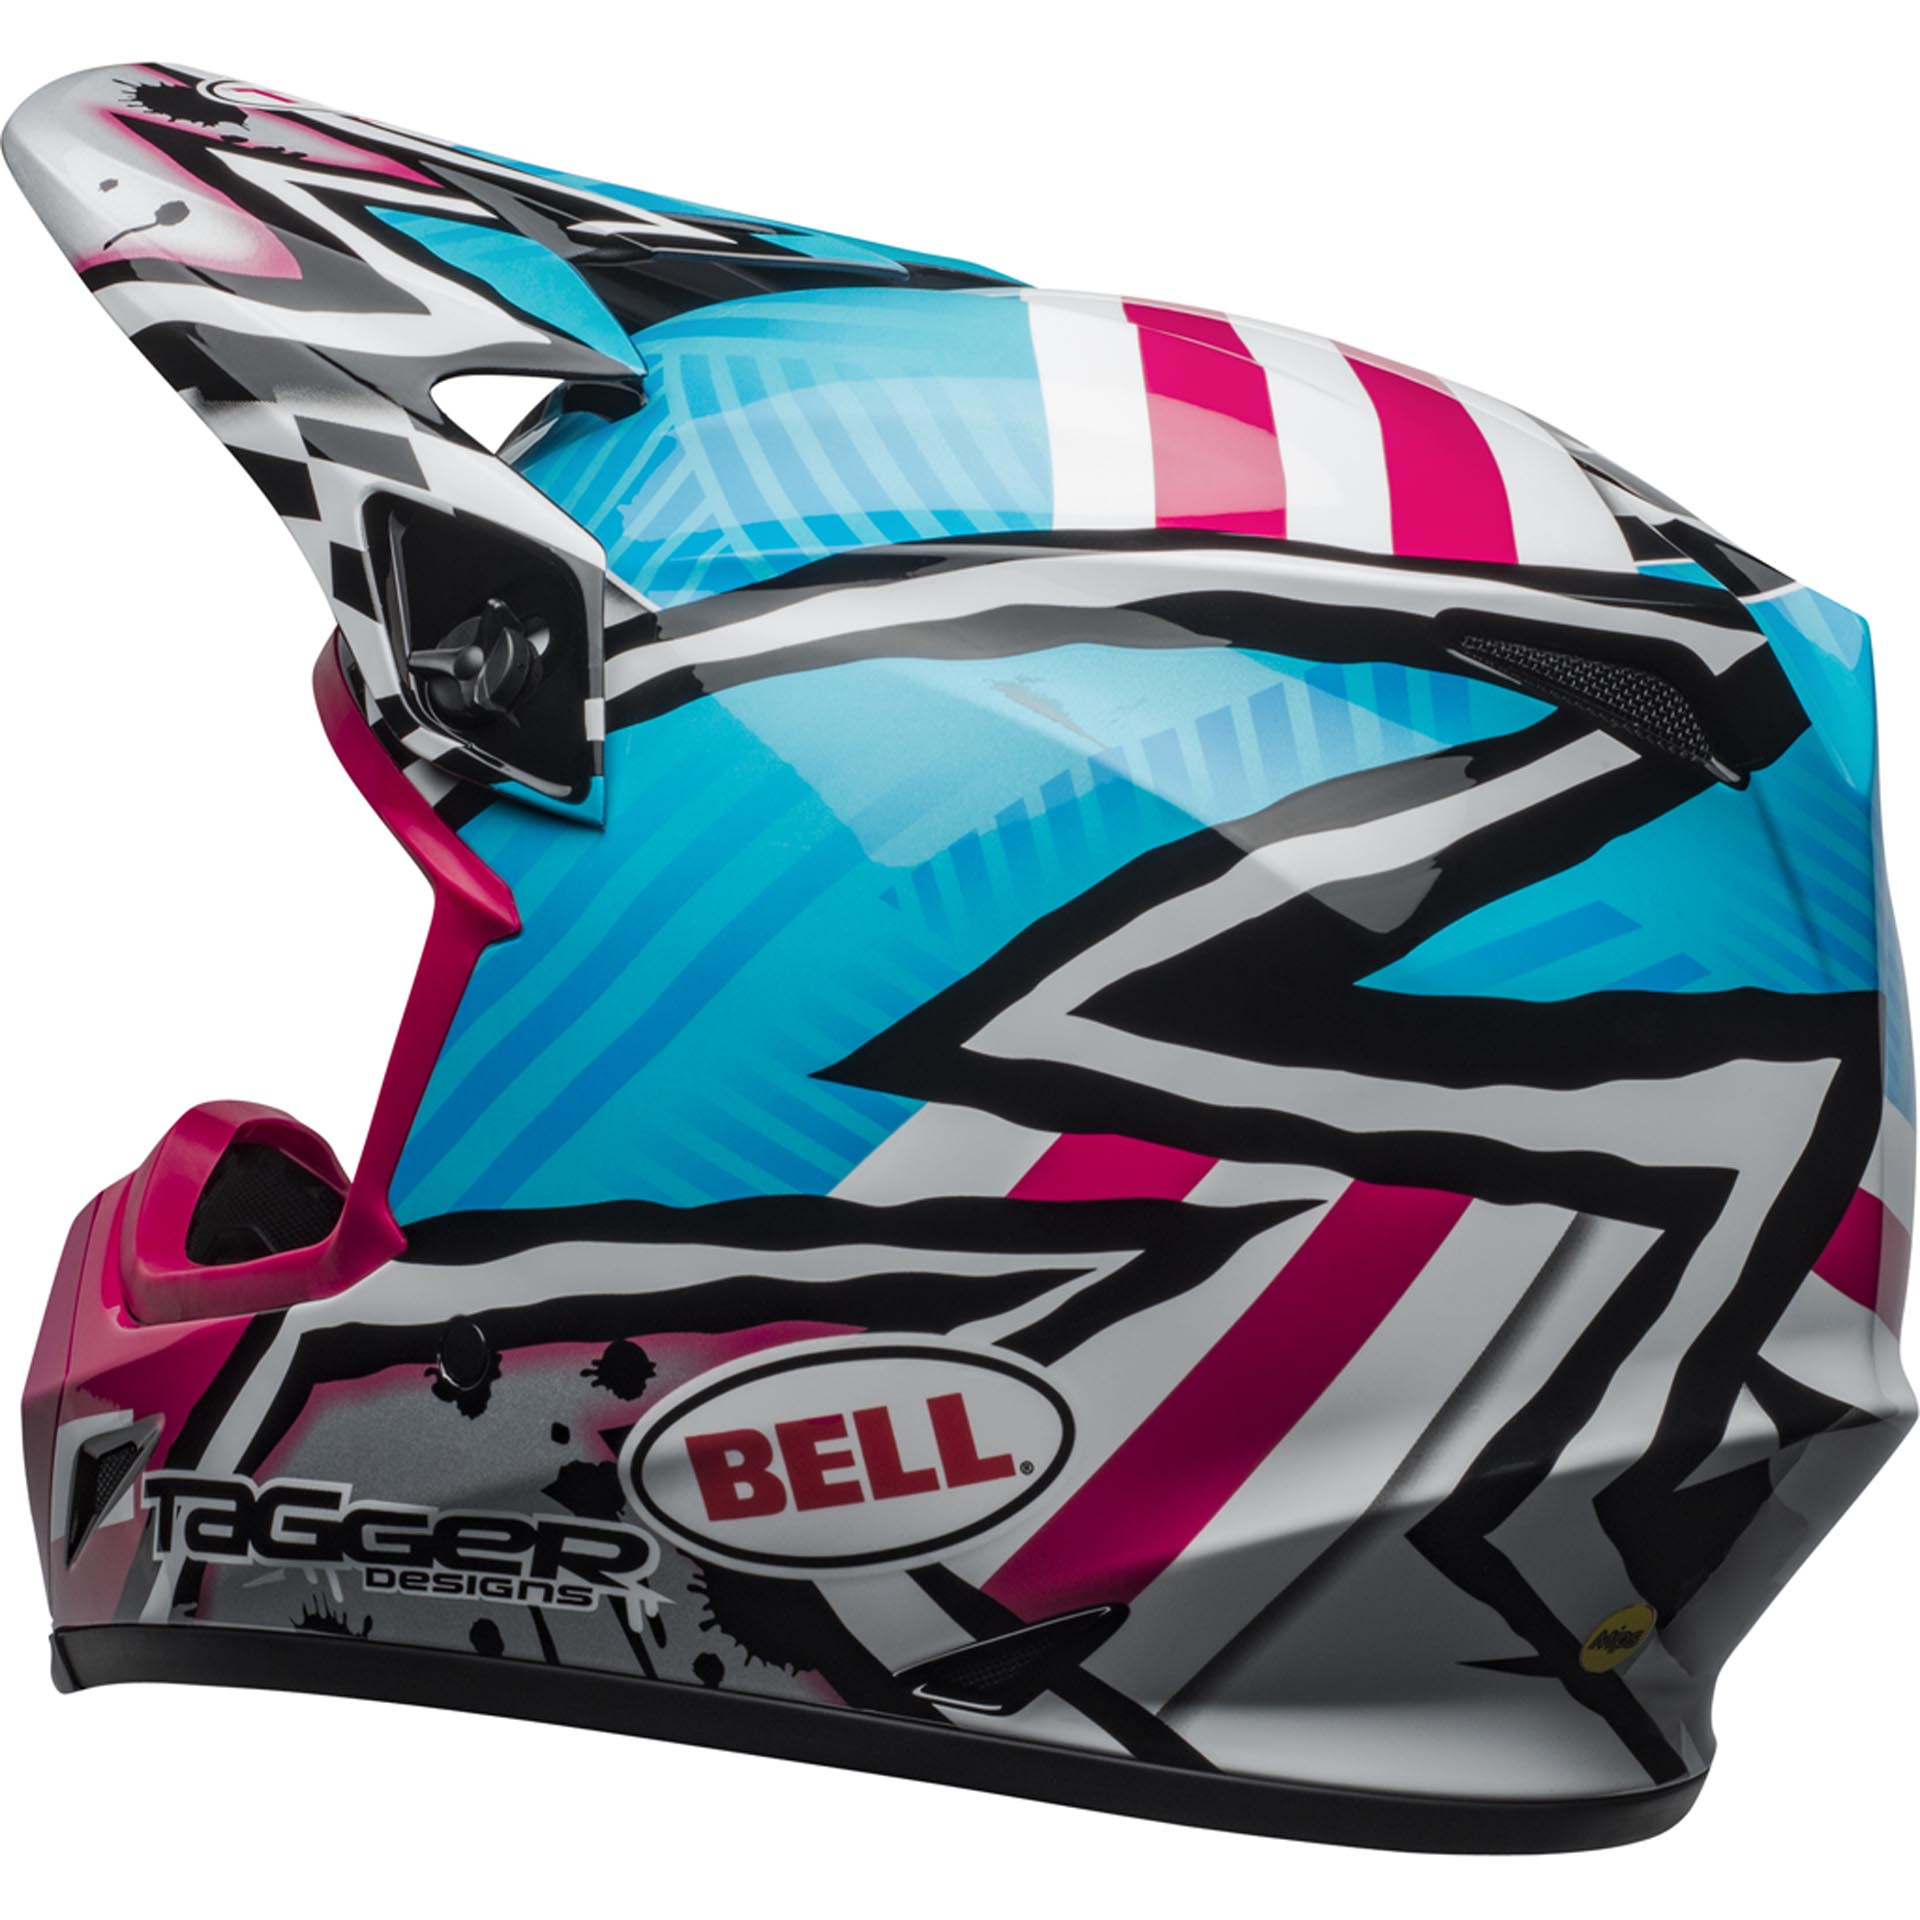 Tagger Asymmetric Gloss Blue//Pink, X-Large Bell MX-9 MIPS Off-Road Motorcycle Helmet